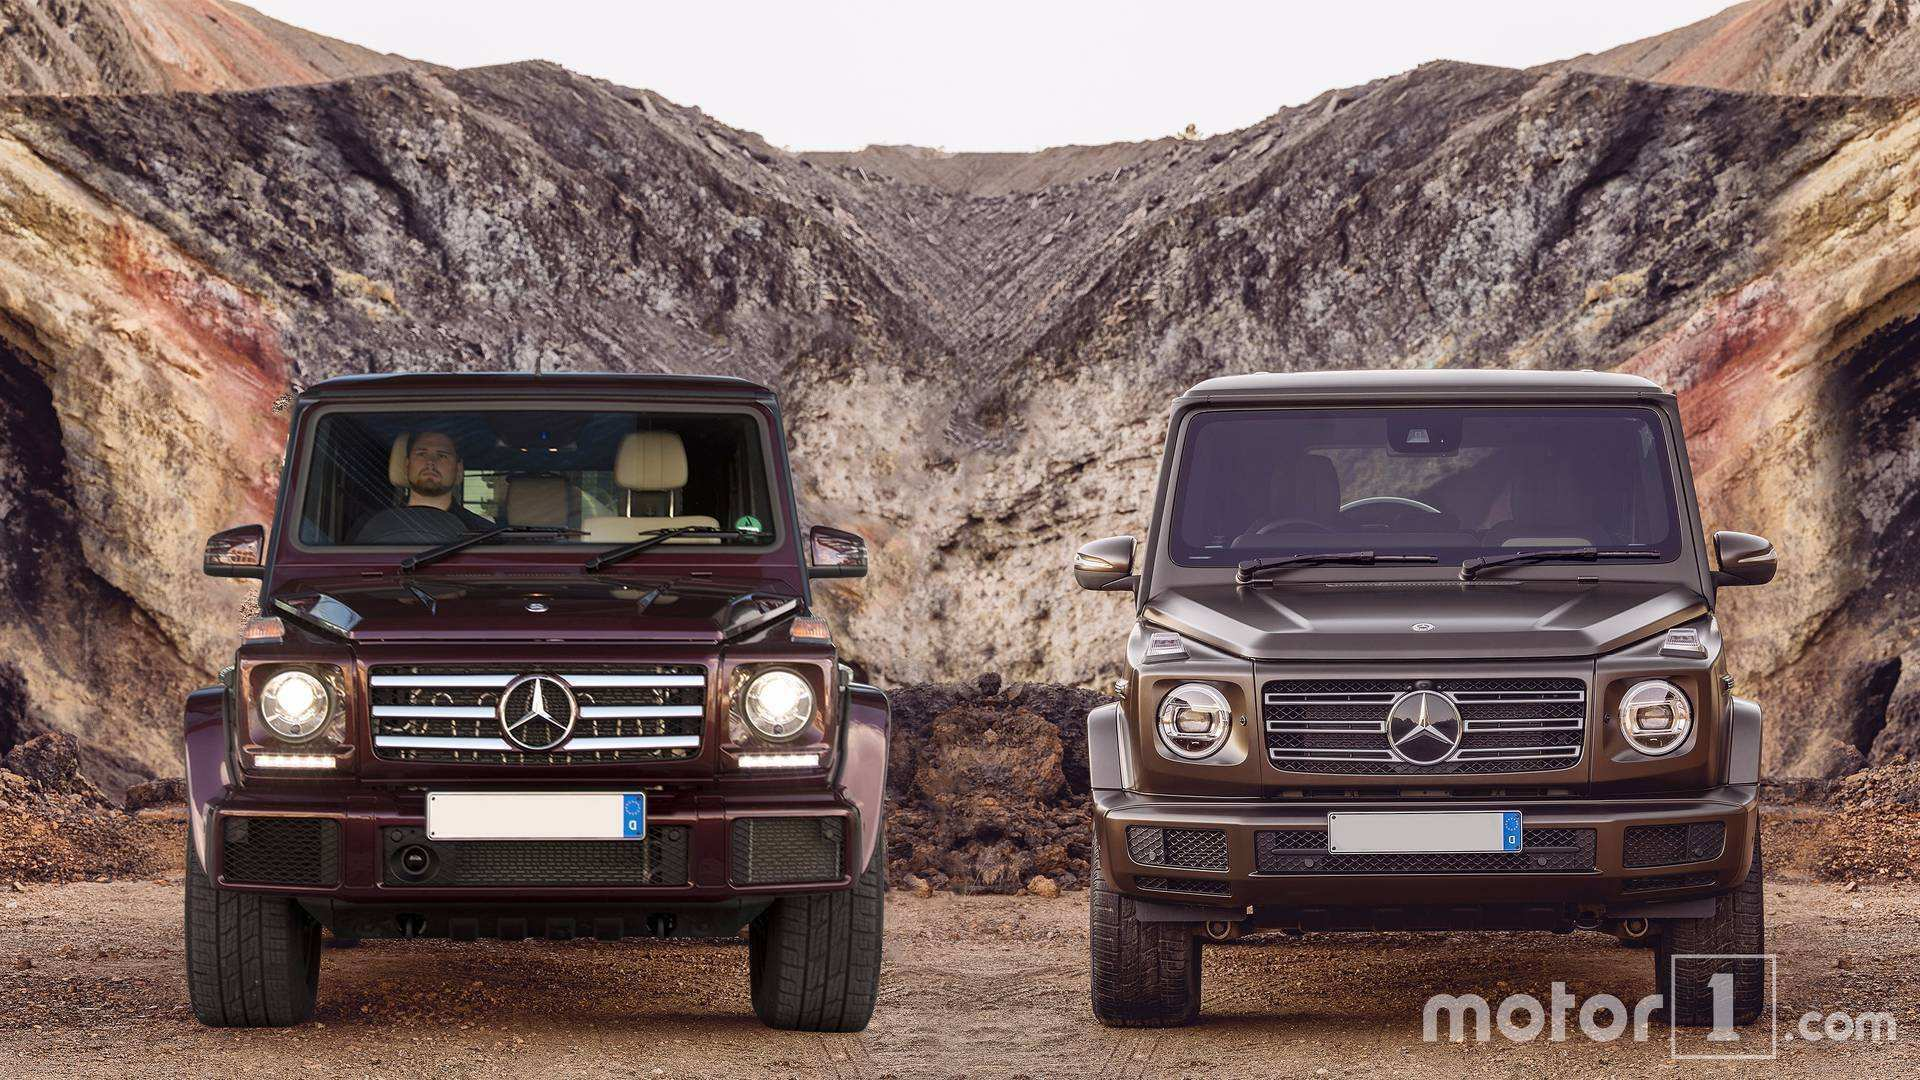 78 New 2020 Mercedes G Wagon New Concept Engine with 2020 Mercedes G Wagon New Concept